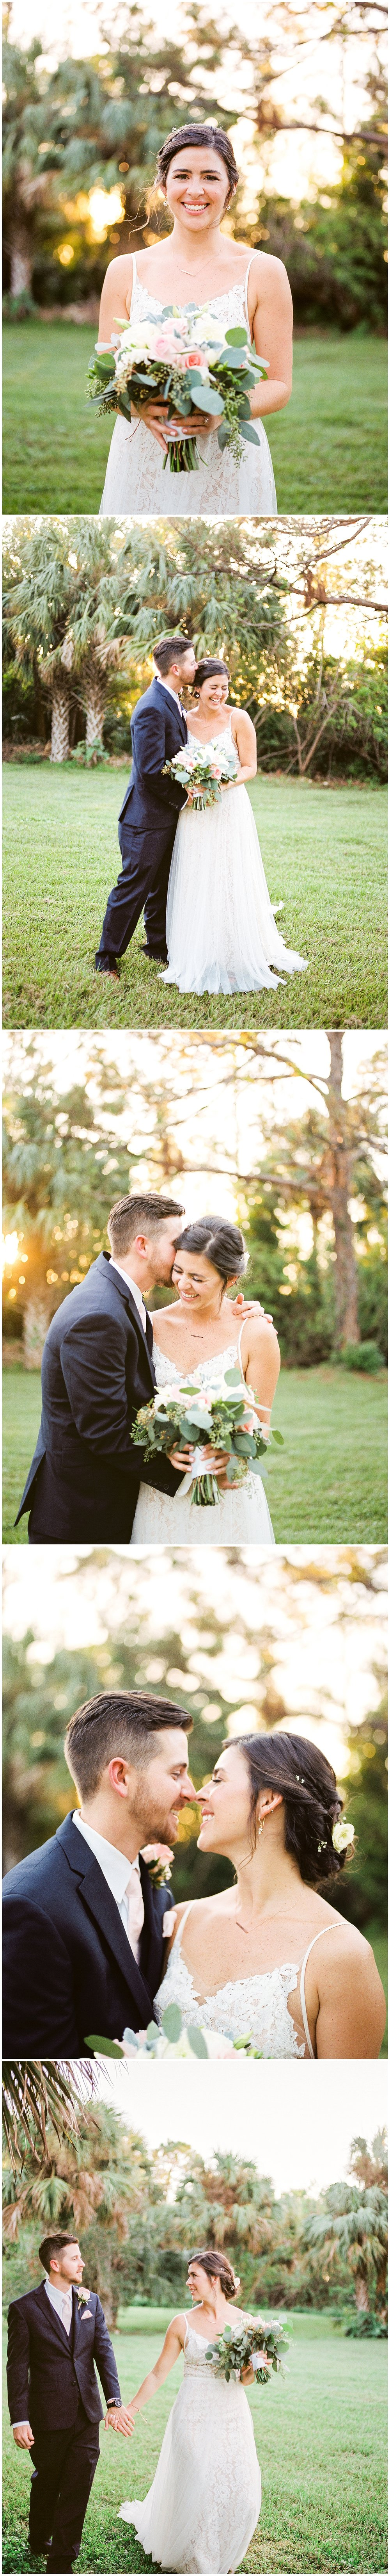 banyan estate malabar palm bay fl bride and groom wedding photos